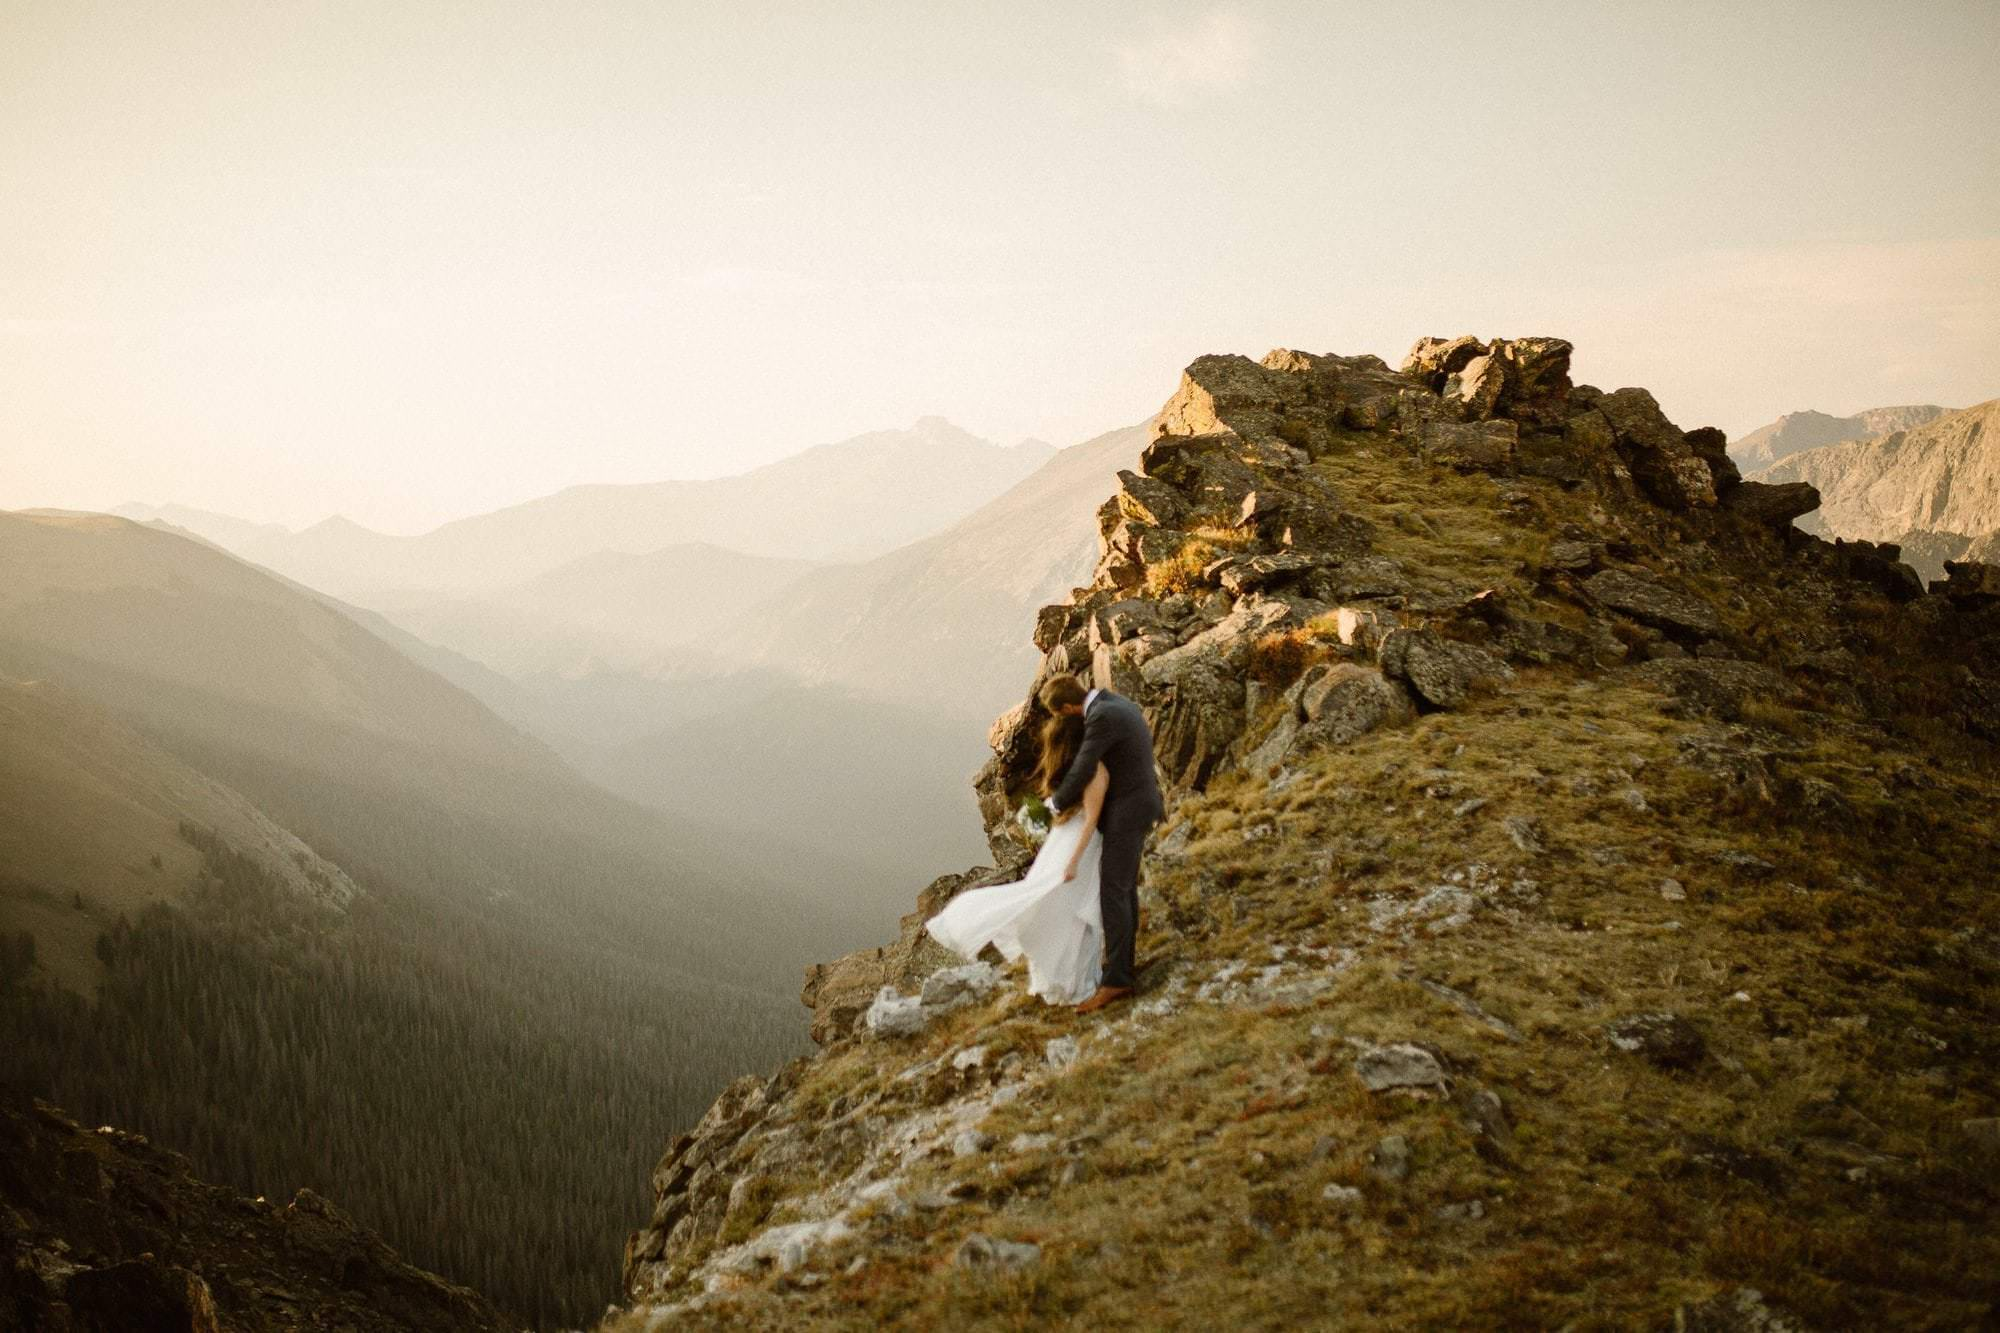 Sunrise, golden hour in Rocky Mountain National Park, Colorado Intimate Weddings and Adventure Elopement Photographer | Rocky Mountain National Park Wedding Photographer | Adventure